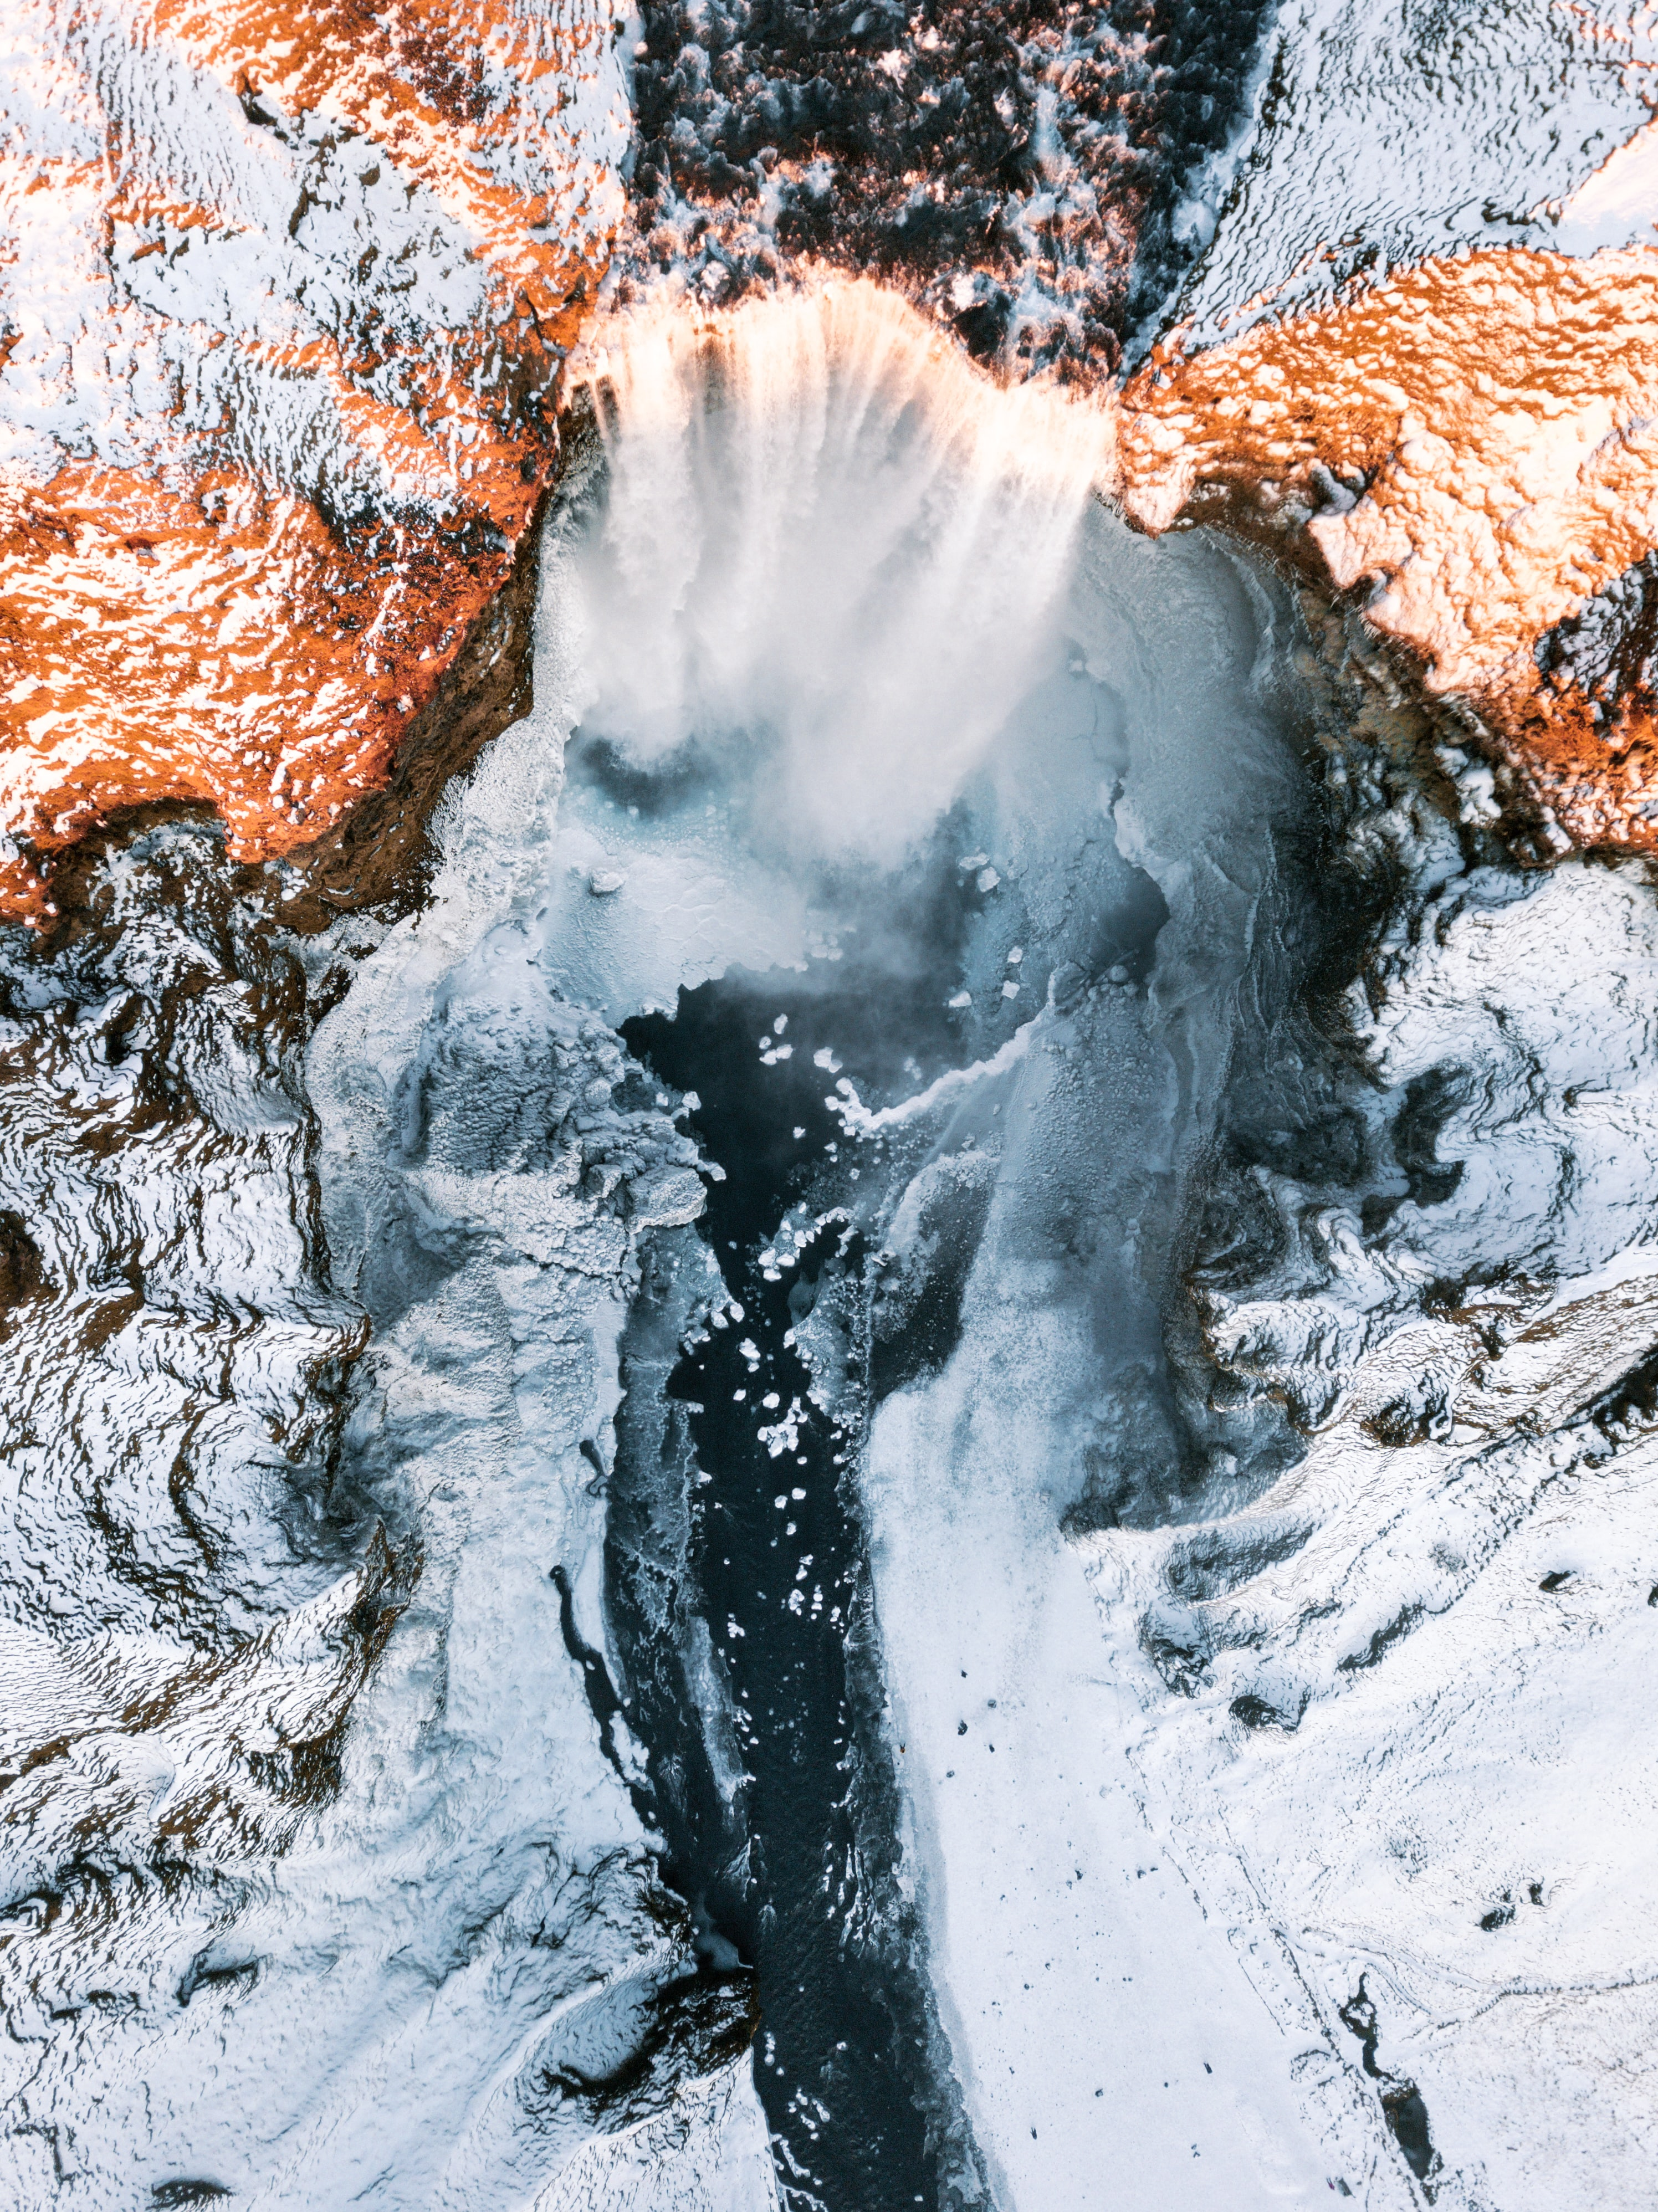 waterfalls in between of white rock formation